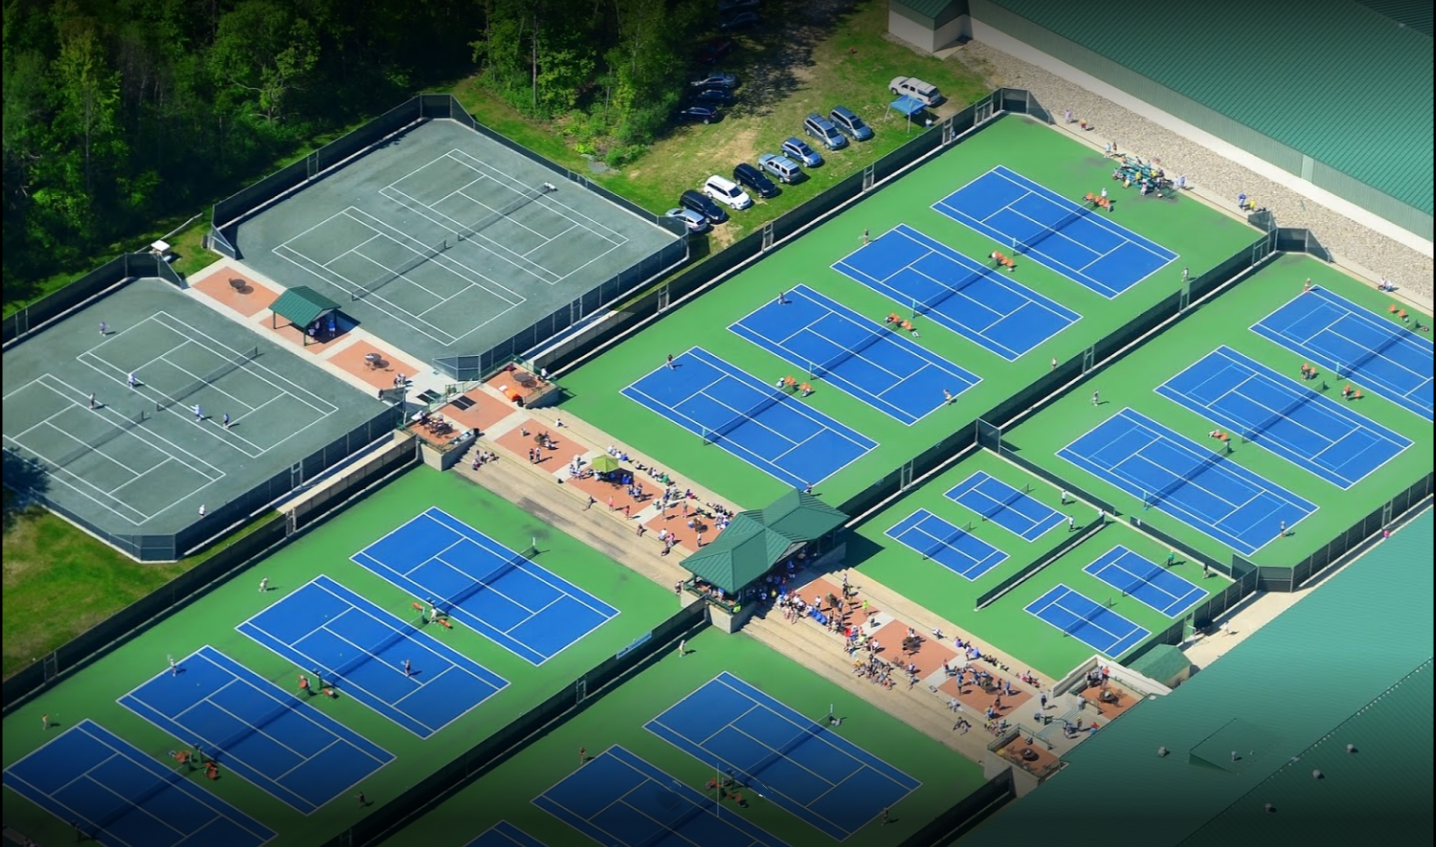 Tennis Center — Greater Midland